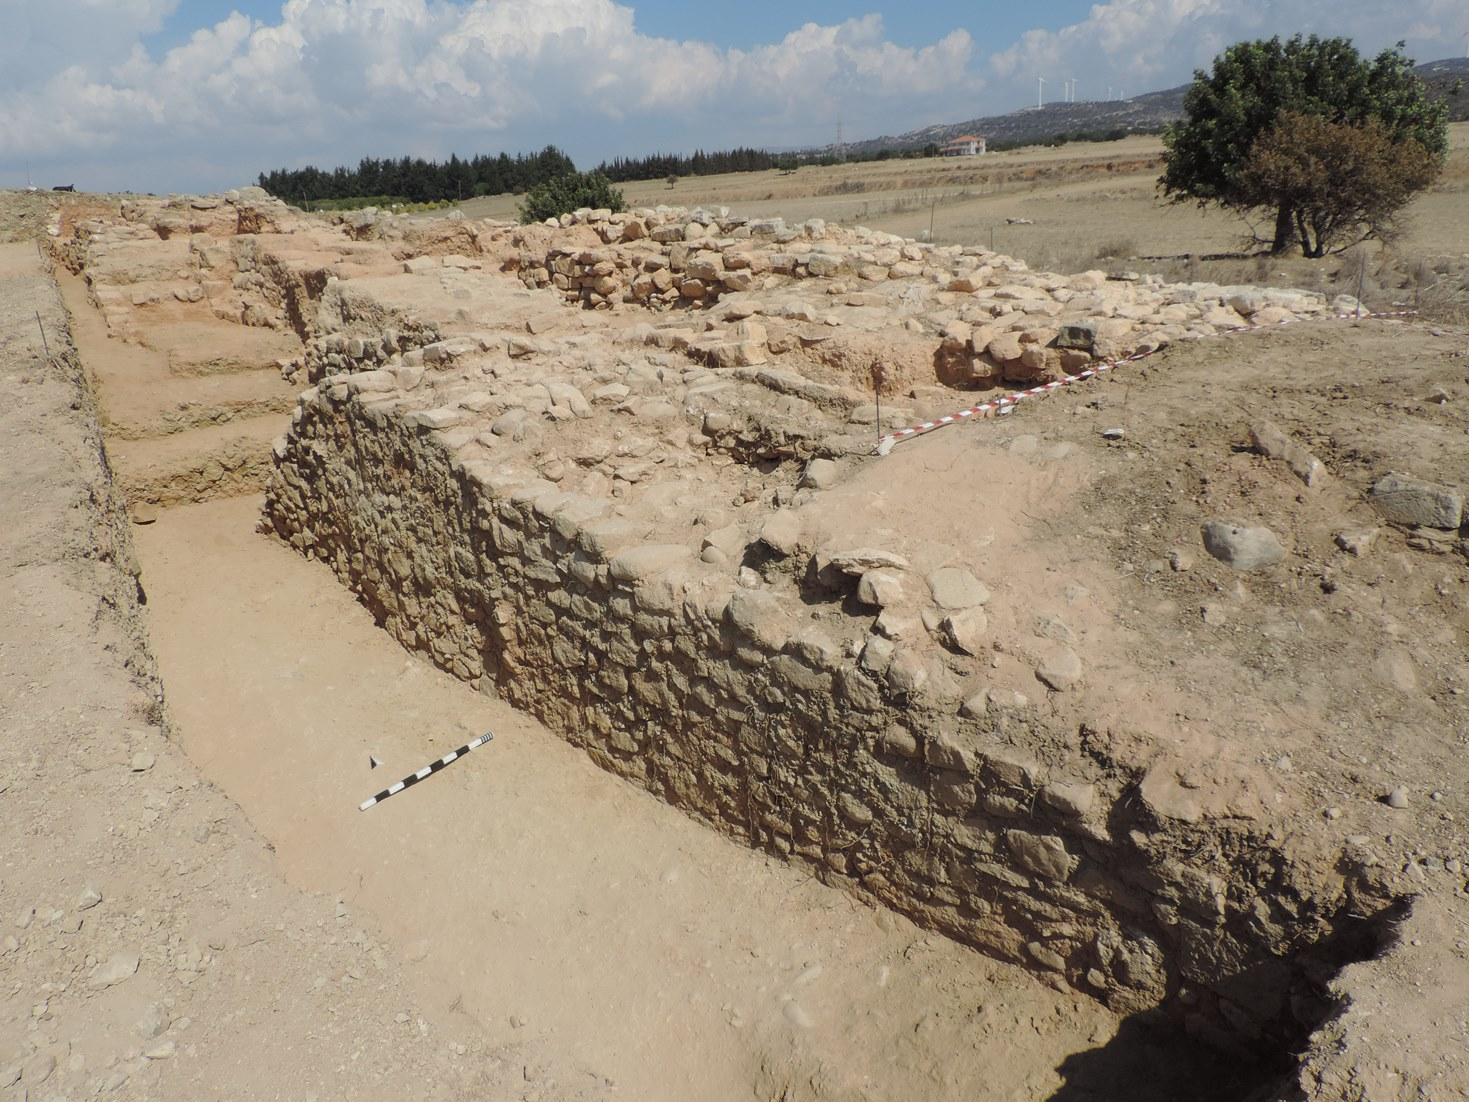 6. The tower excavated on the southeastern side of the tumulus